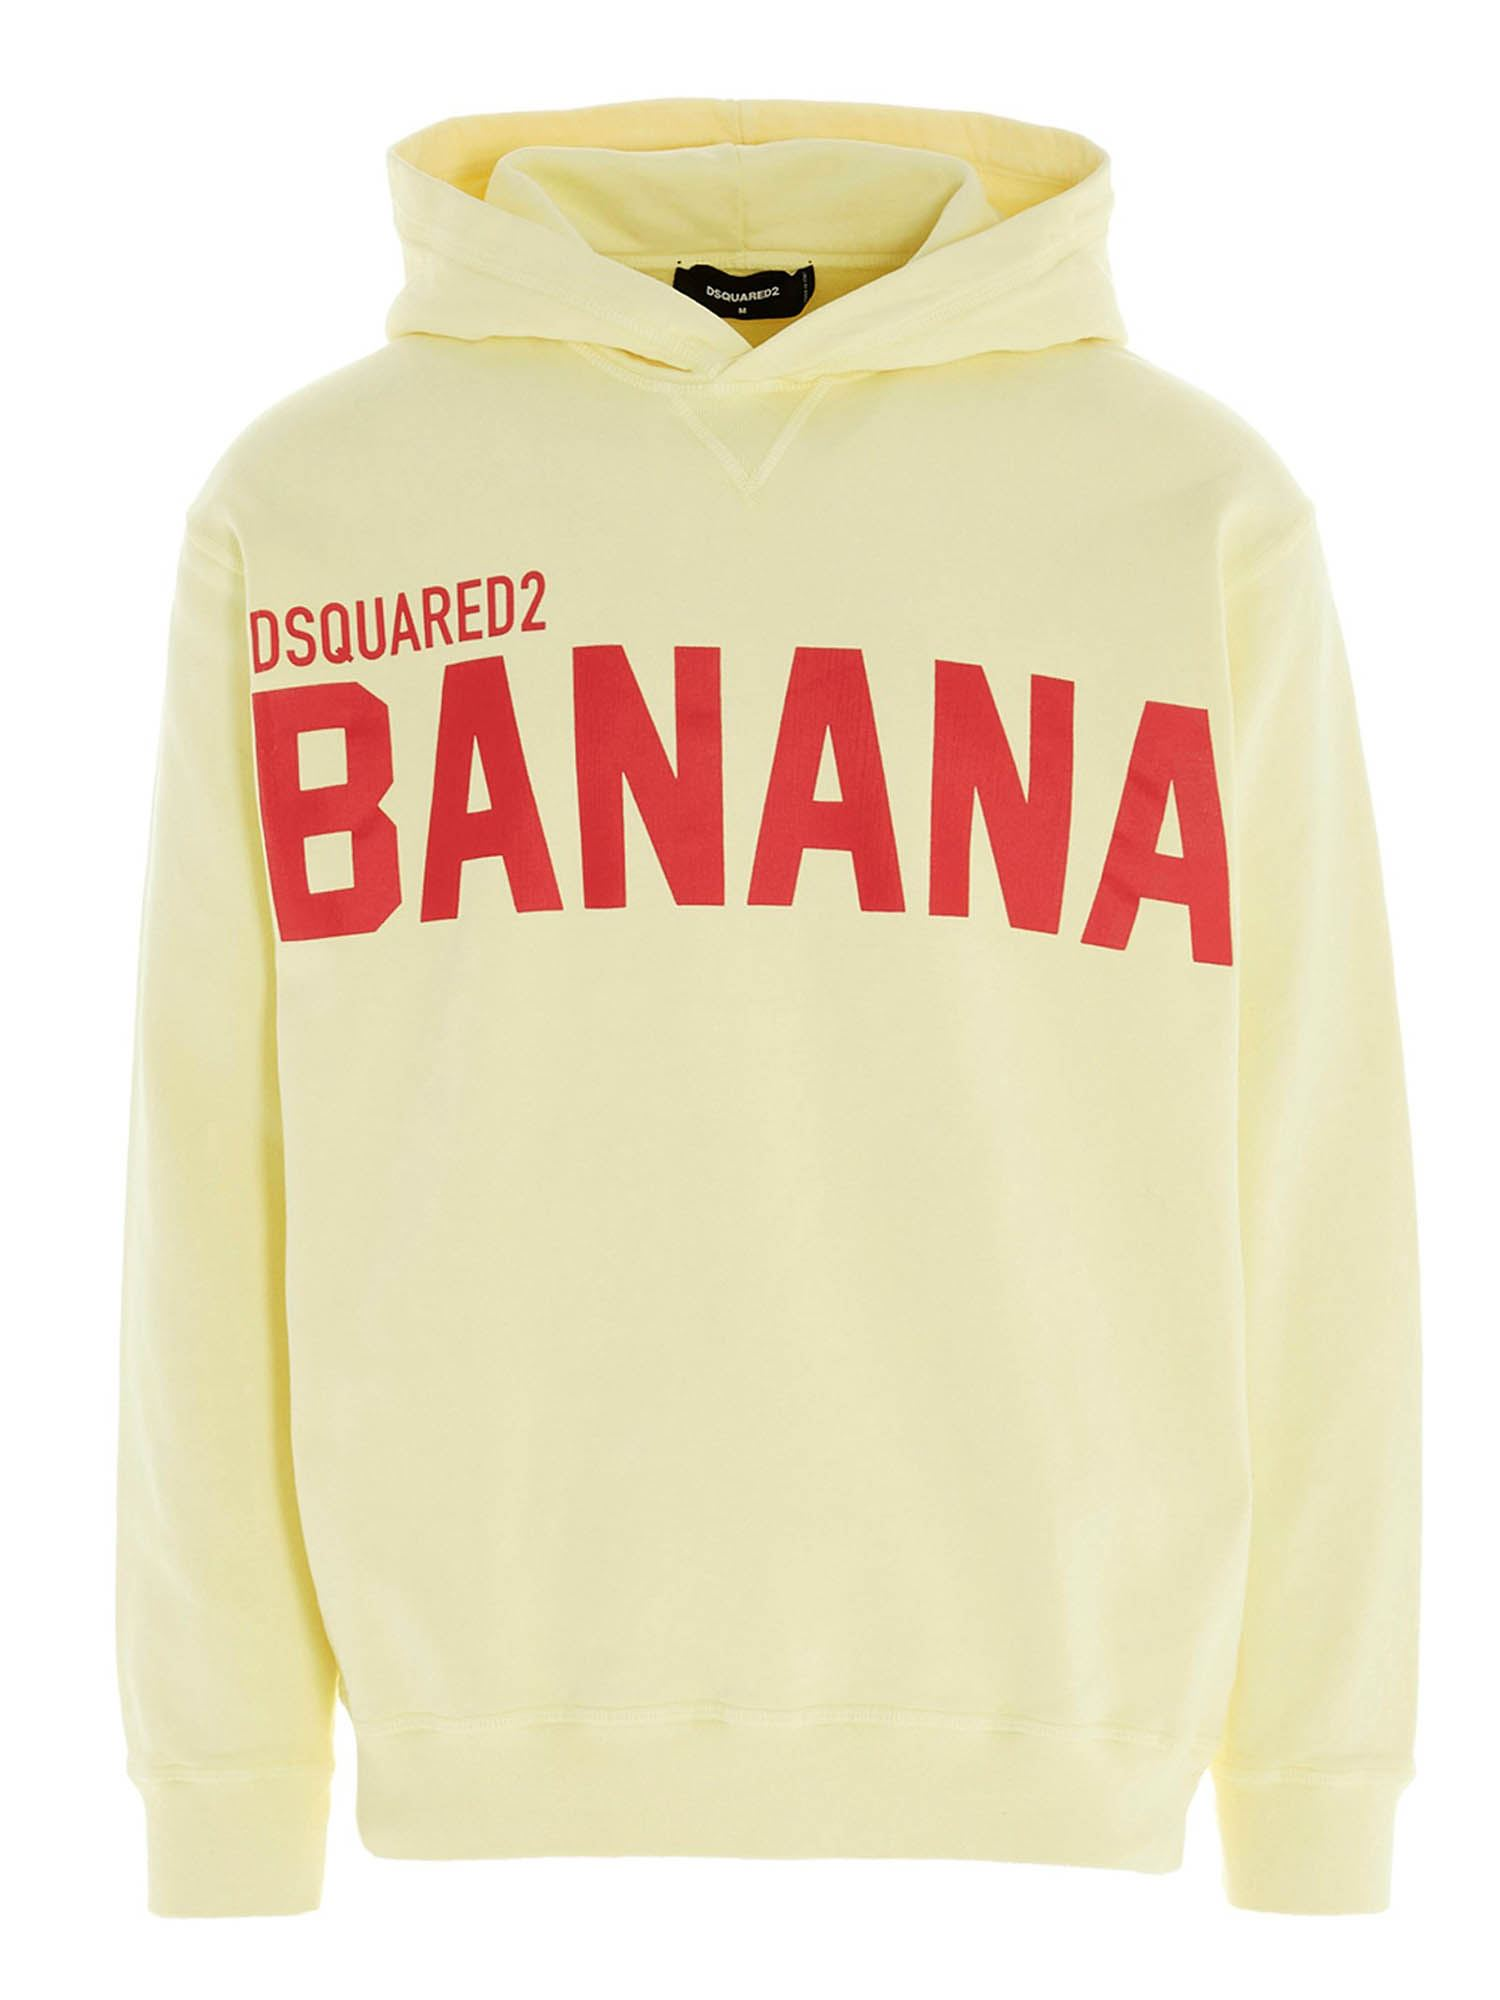 Dsquared2 Cottons BANANA HOODIE IN YELLOW